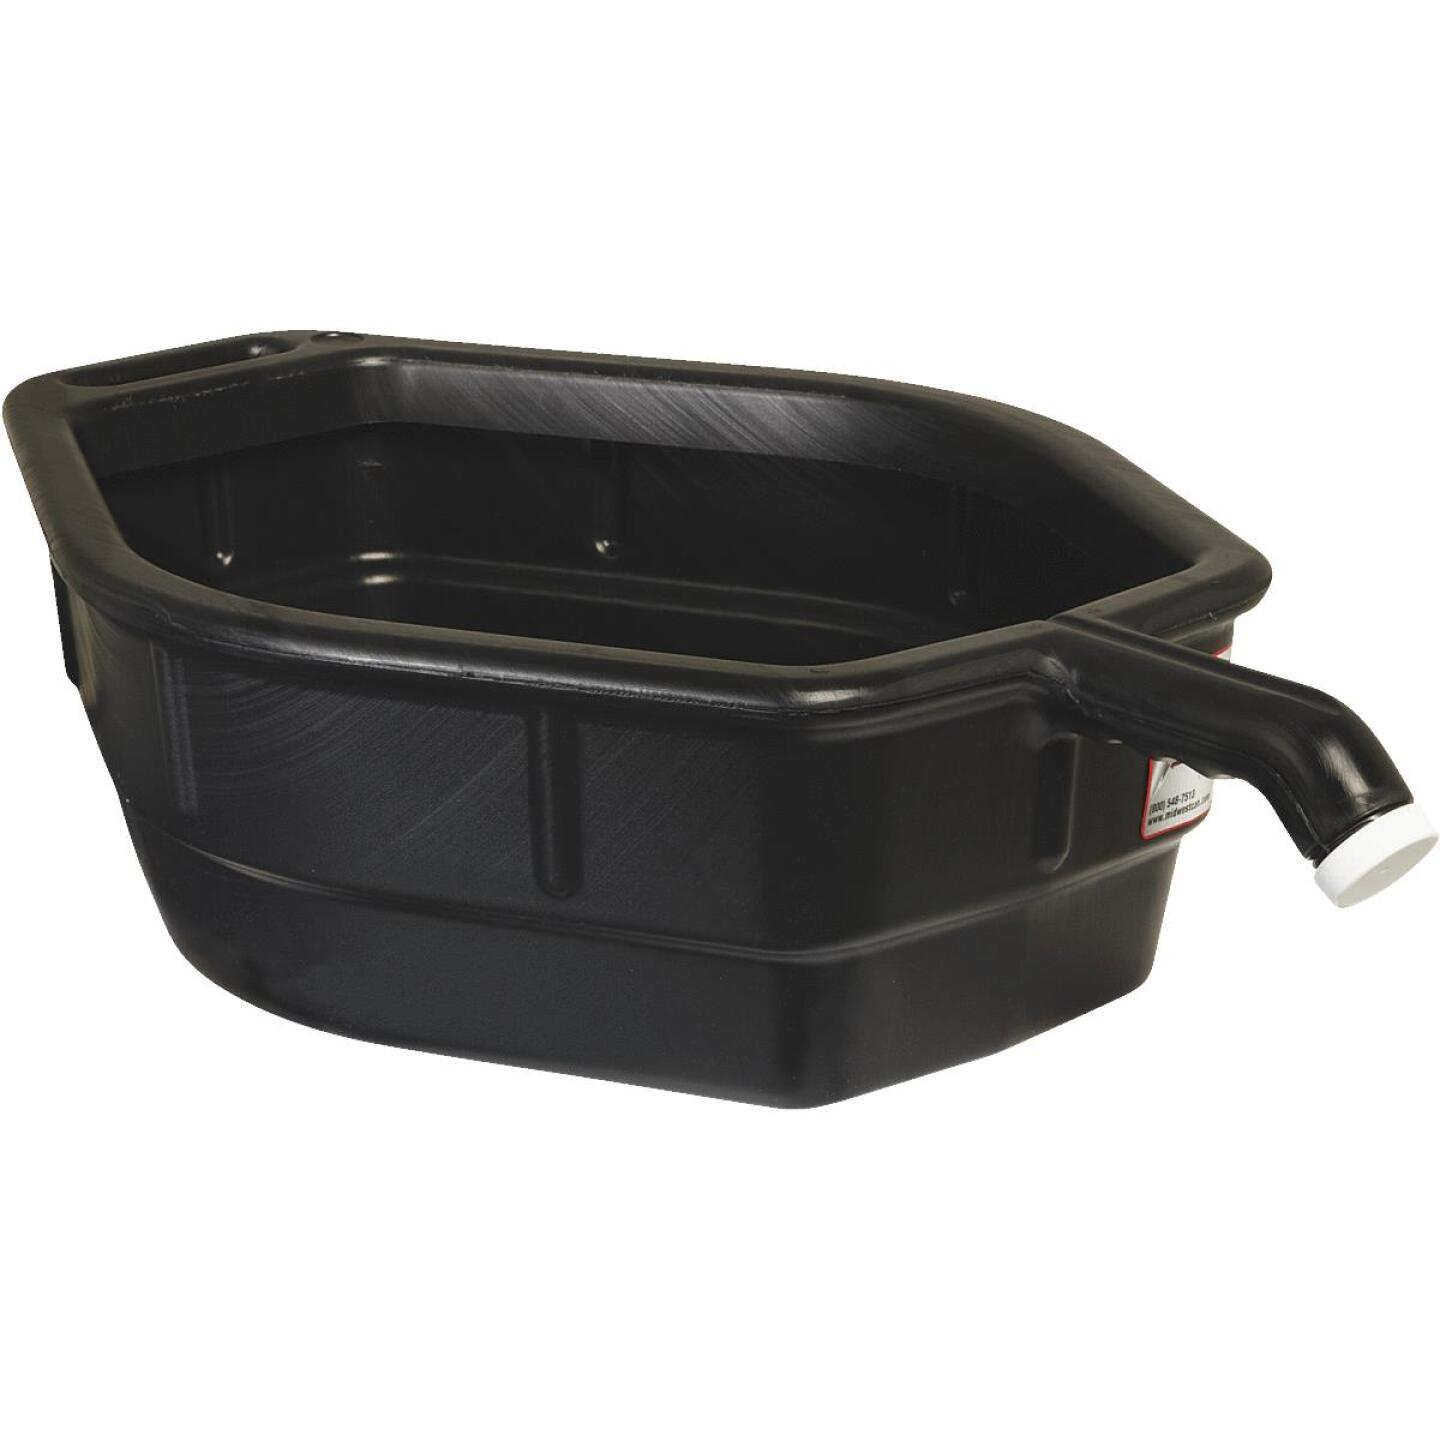 Midwest Can 5 Gal Black Polyethylene Oil Drain Pan Image 1